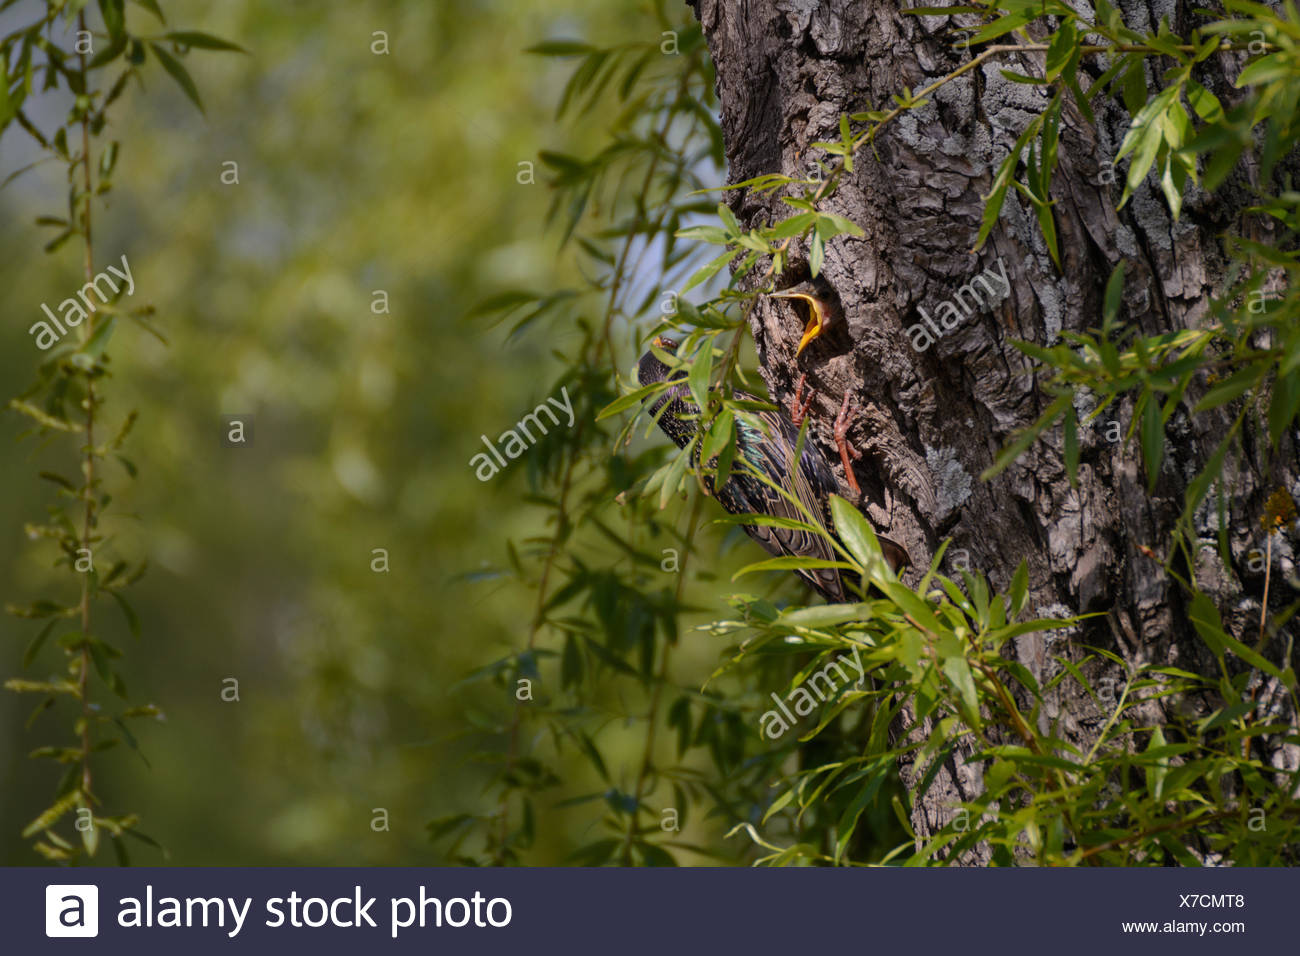 star in its nest feeding young Stock Photo